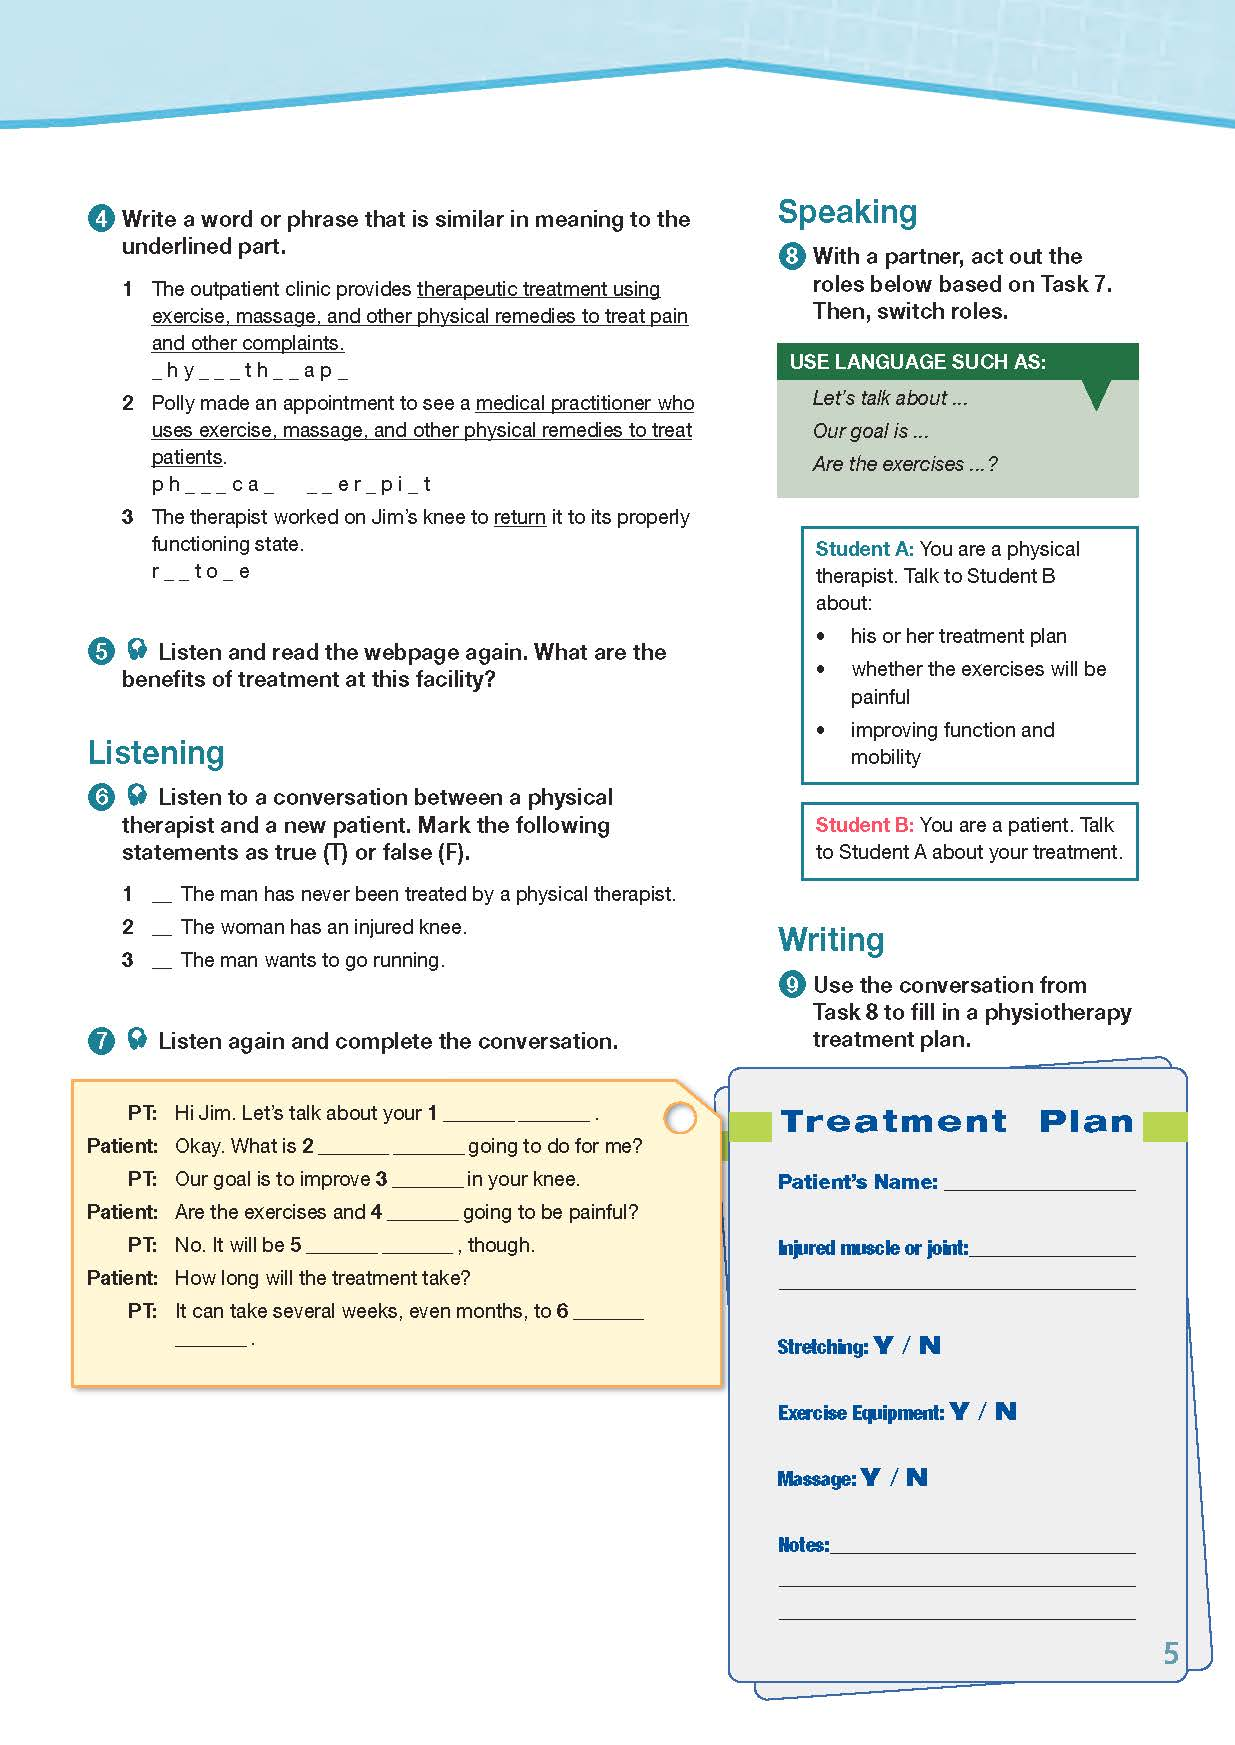 ESP English for Specific Purposes - Career Paths: Physiotherapy - Sample Page 2